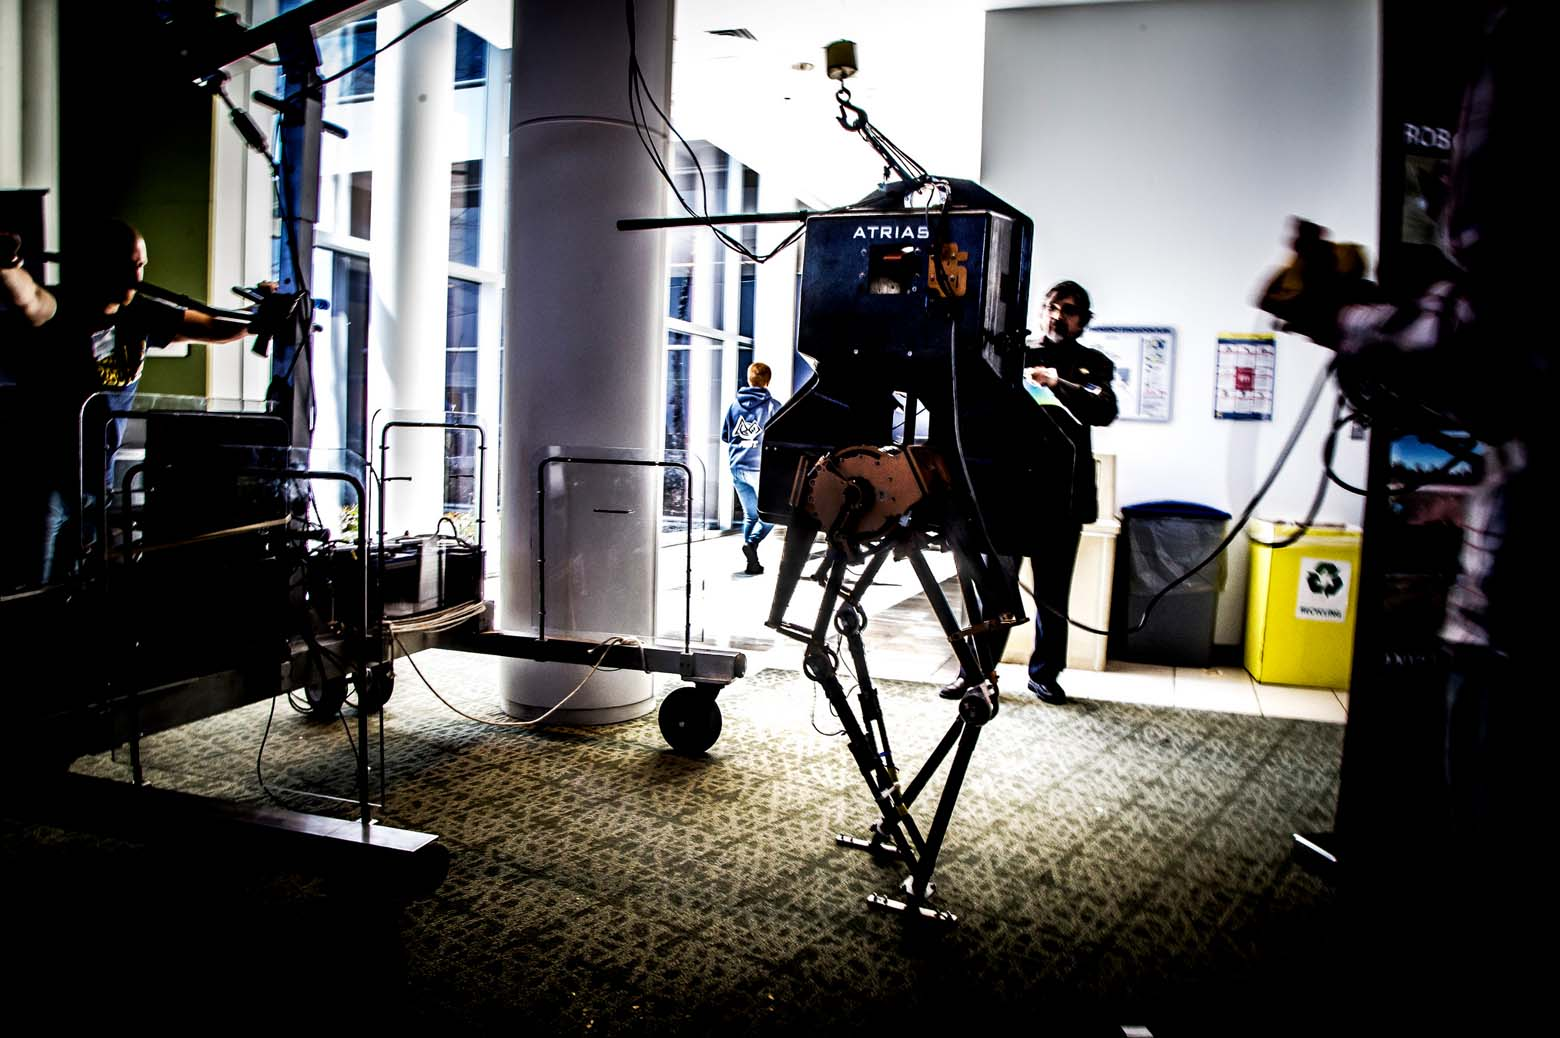 MARLO, a bipedal robot, standing in place.